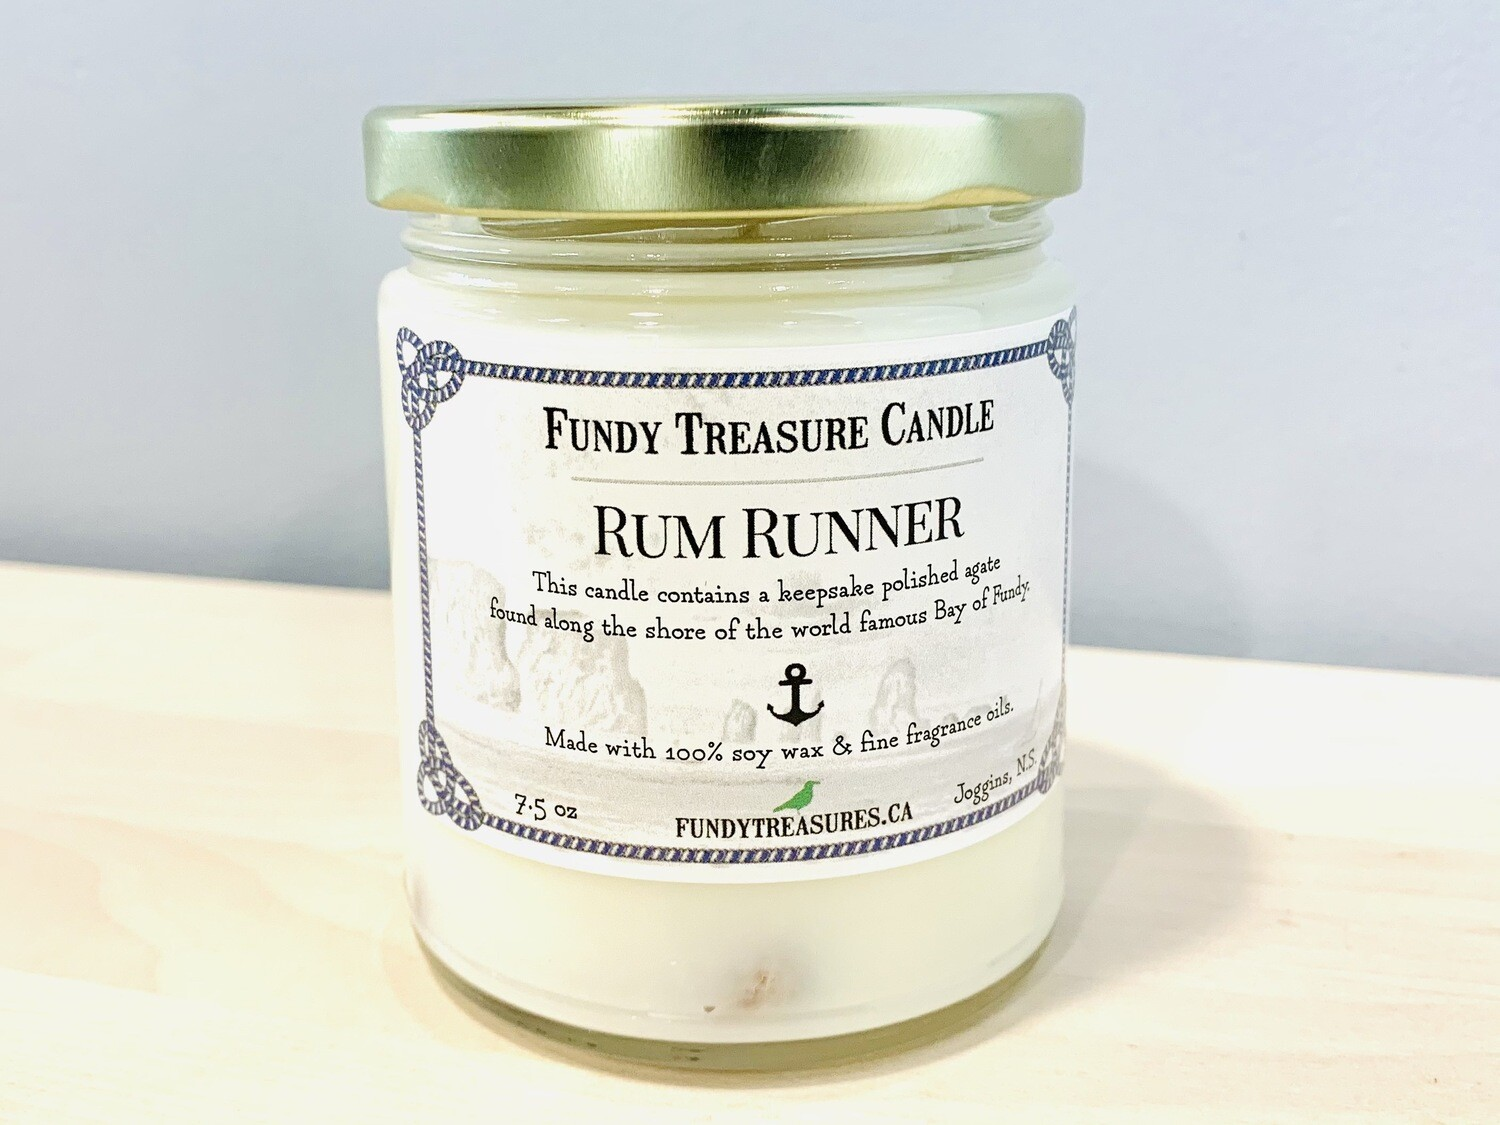 Rum Rummer Candle